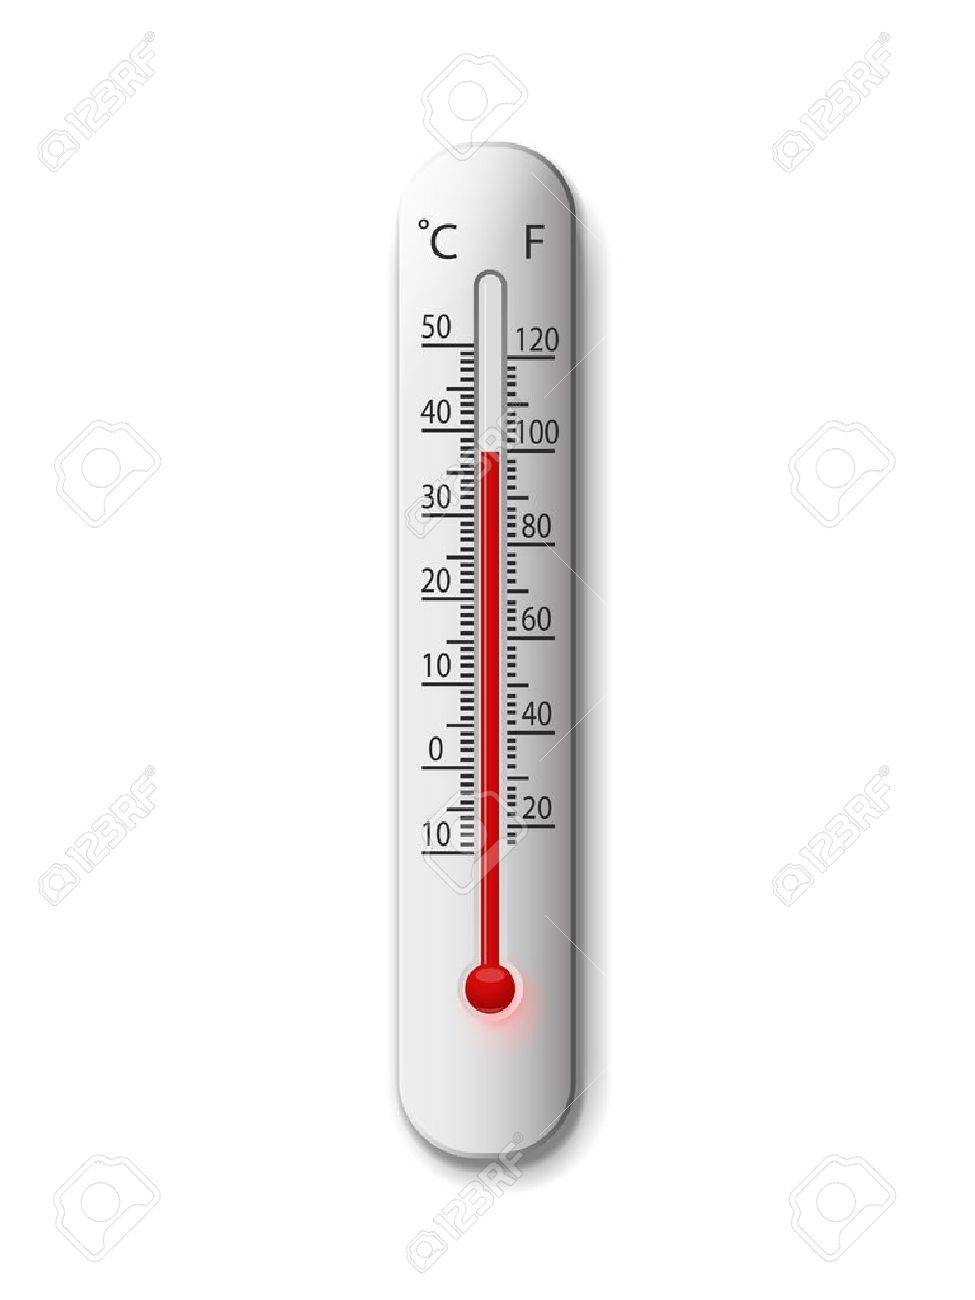 thermometer on a white - 12483423